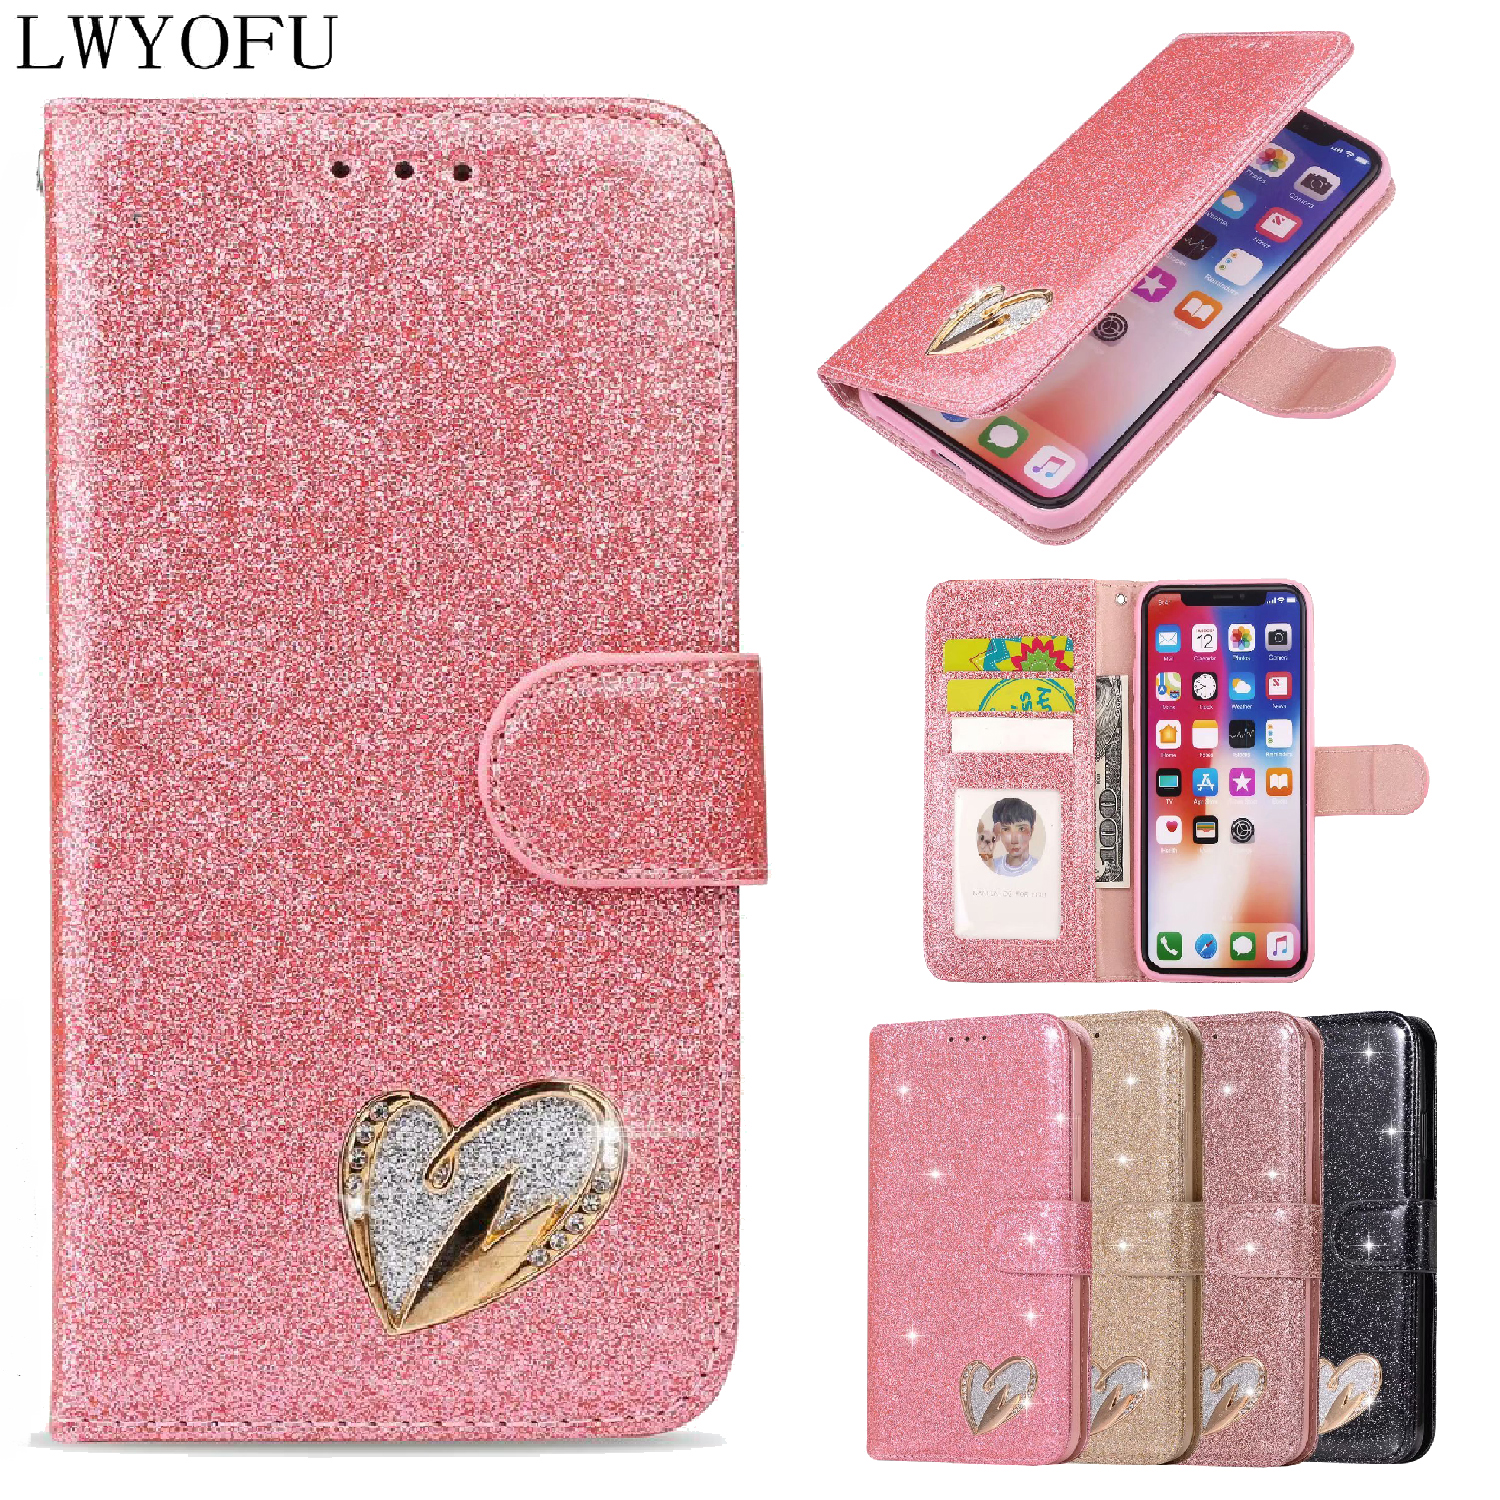 Luxury colorful shiny flip cover for Apple iPhone 5S 6S 7 8 Plus wallet XS XR Max case